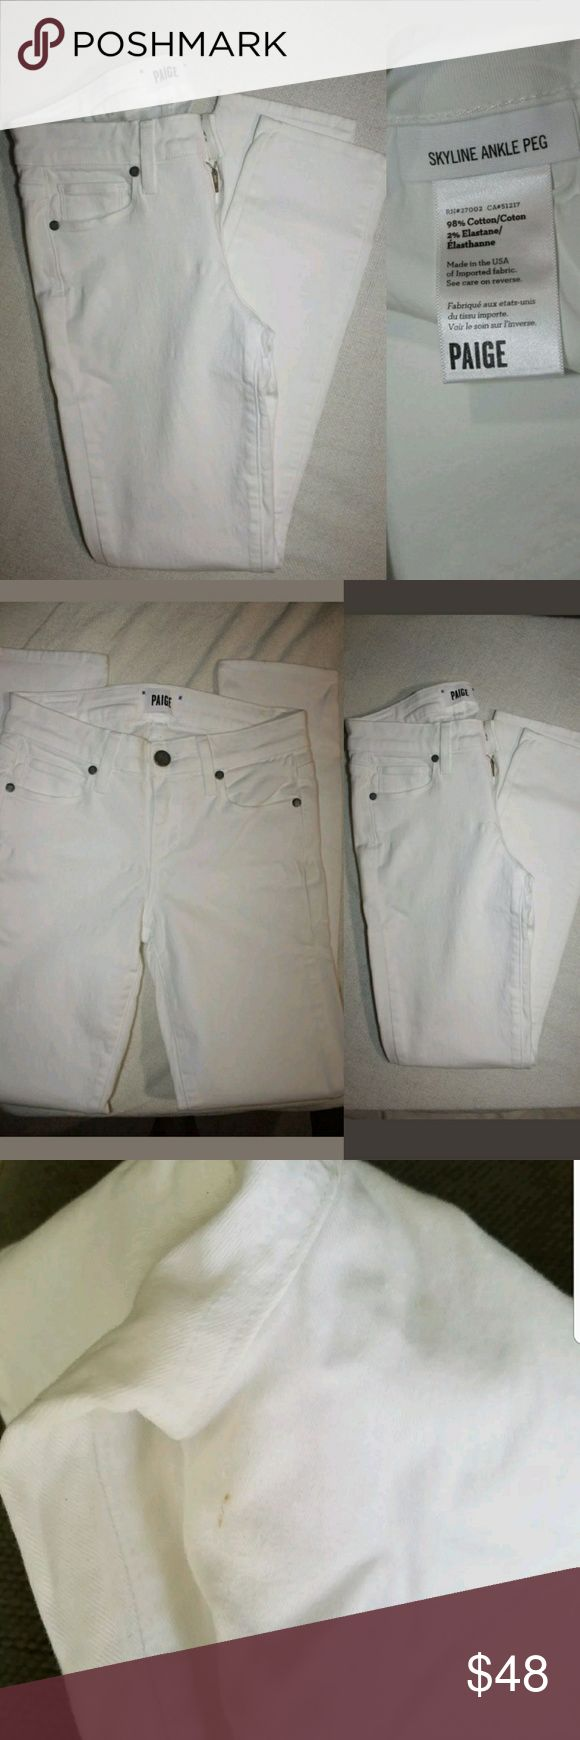 PAIGE Denim Skyline Ankle Peg ~ Optic White Sz 25 Up for sale NEW WITH NO TAGS ,BOUGHT BUT IT DIDN'T FIT.  PAIGE Denim Skyline Ankle Peg ~ Optic White Sz 25 MSRP $189  Has a hairline stain on the back leg....check pictures please. Paige Jeans Jeans Skinny